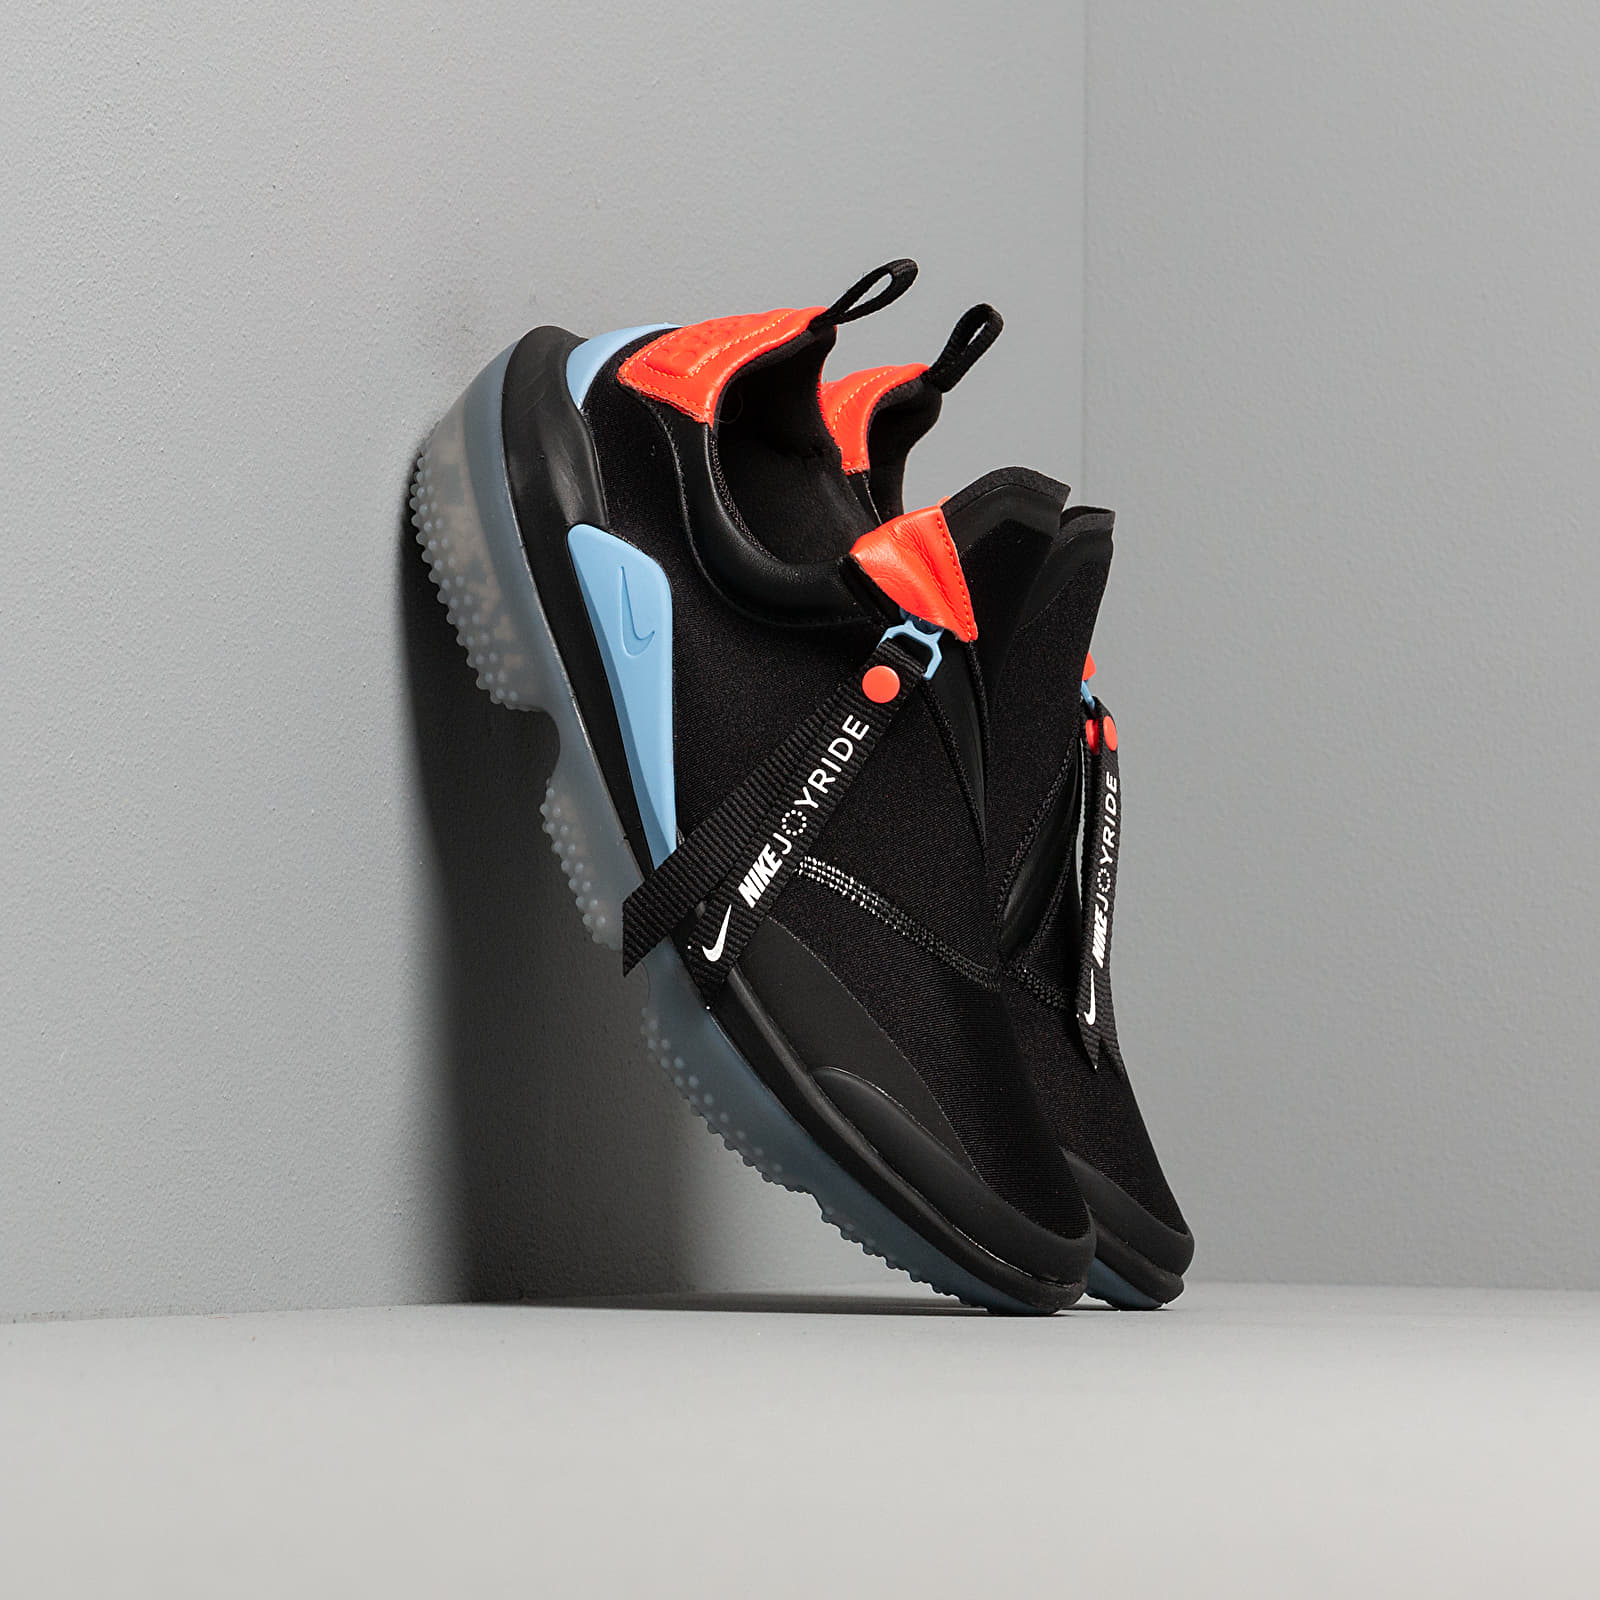 Női cipők Nike W Joyride Optik Black/ Light Blue-Bright Crimson